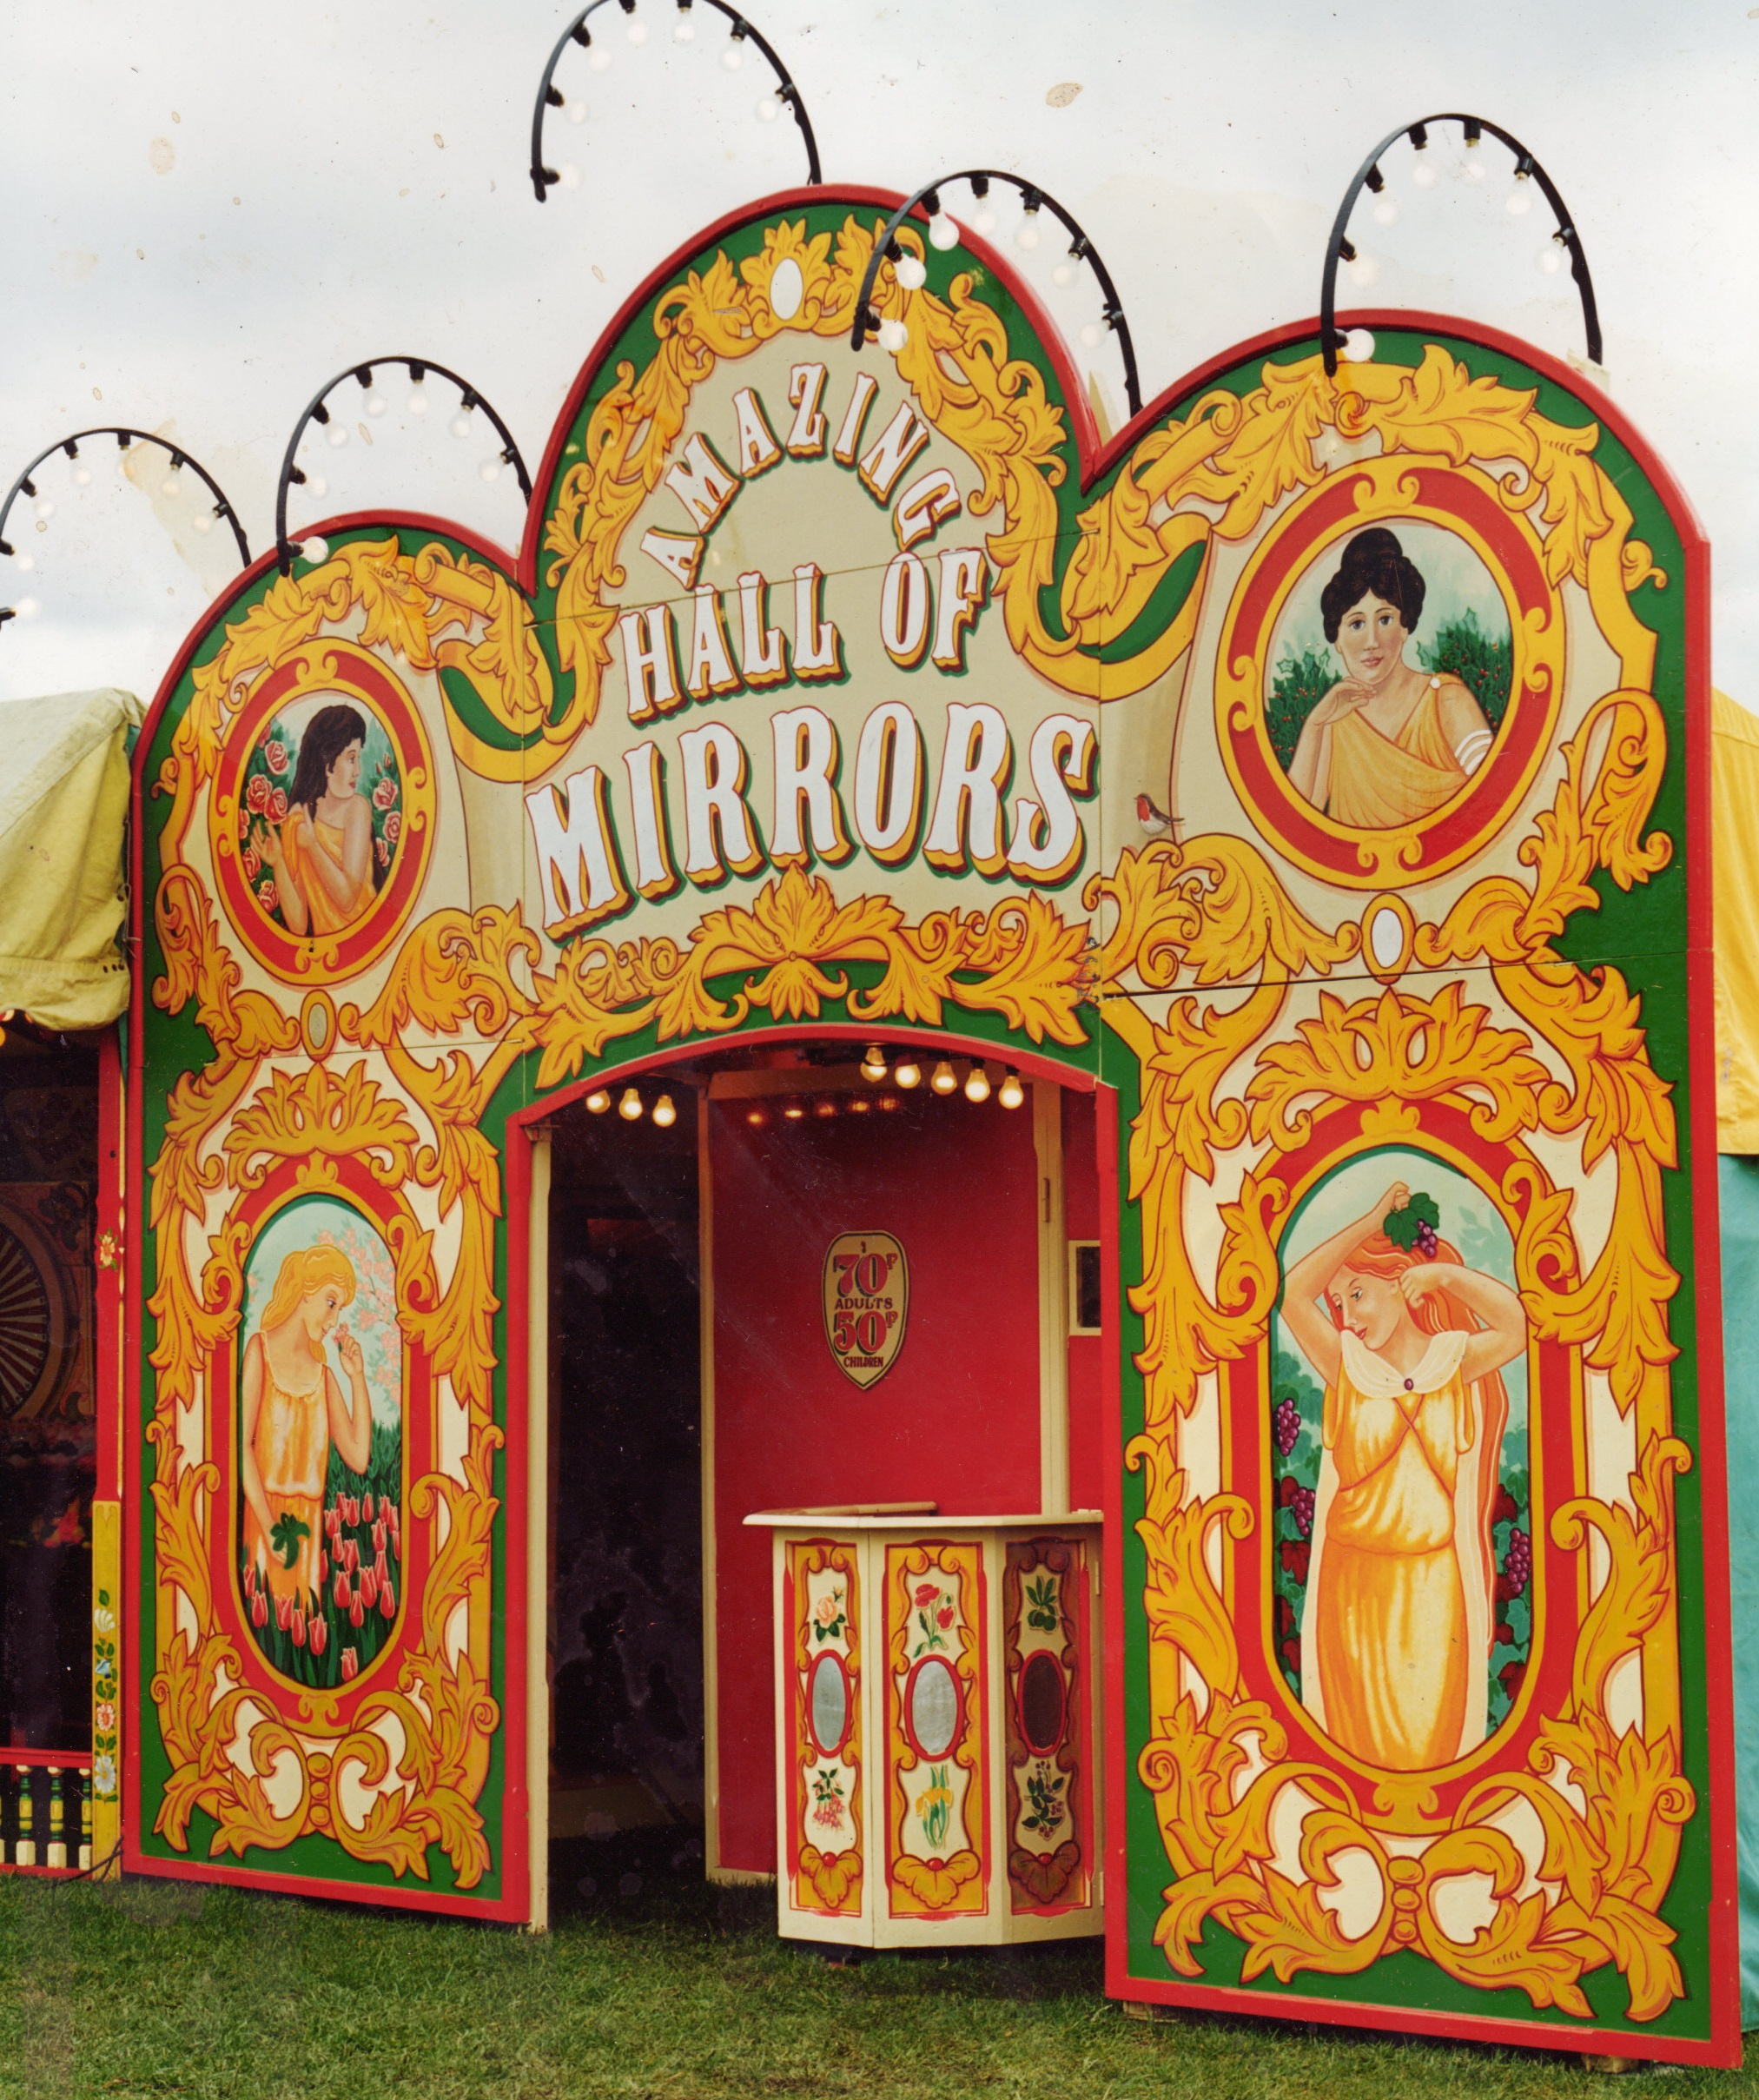 Hall of mirrors showfront, Gold scrolls with art nouveau painted ladies. Painted for carters steam fair in London.